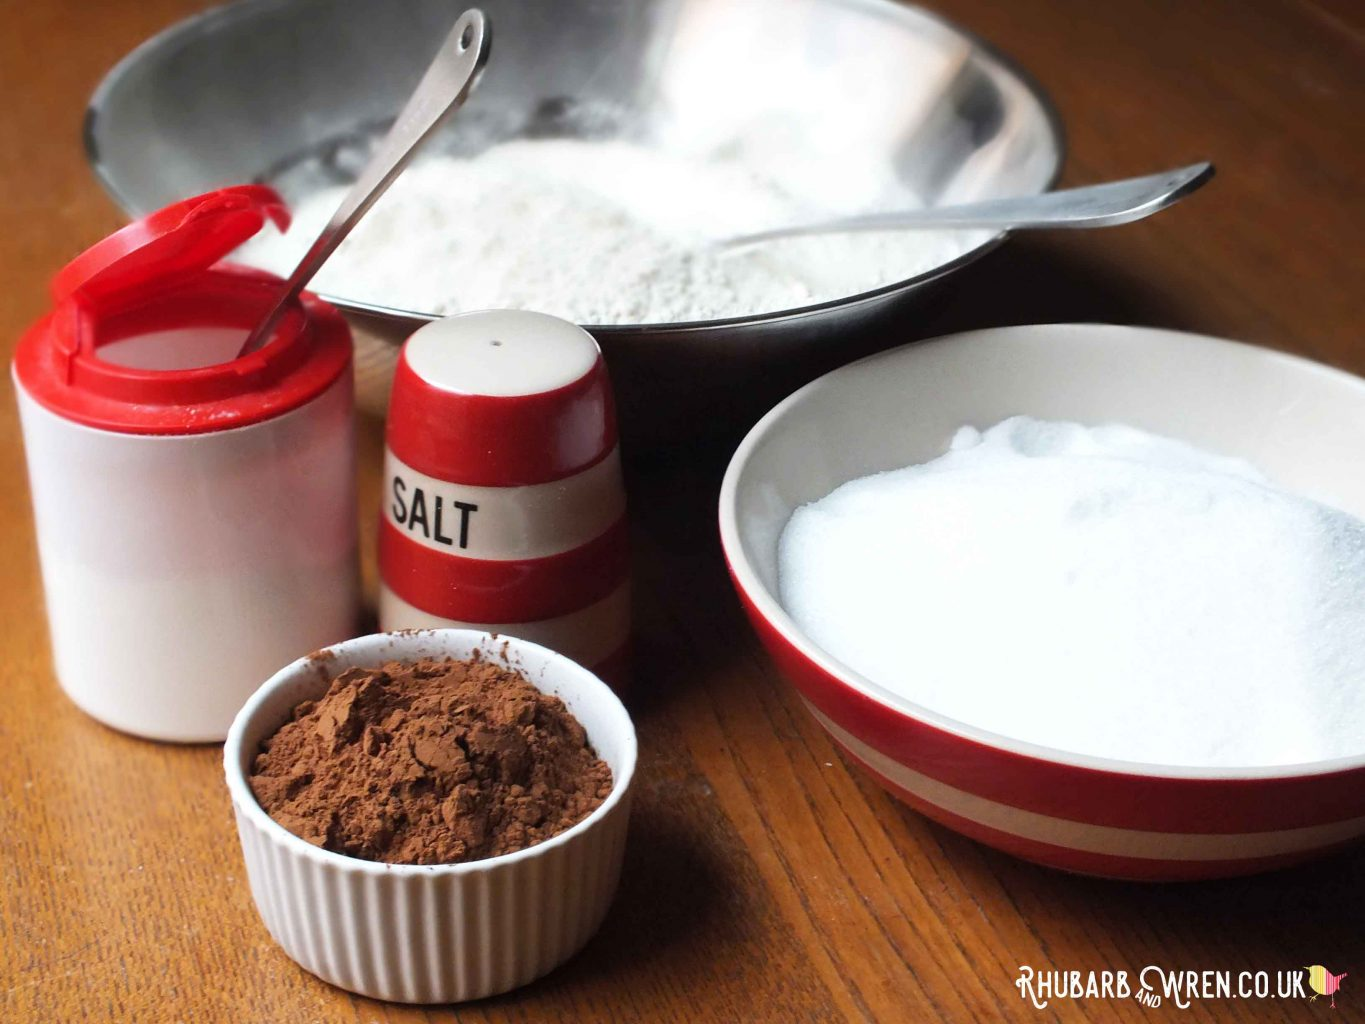 Dry ingredients needed for milk chocolate cake recipe